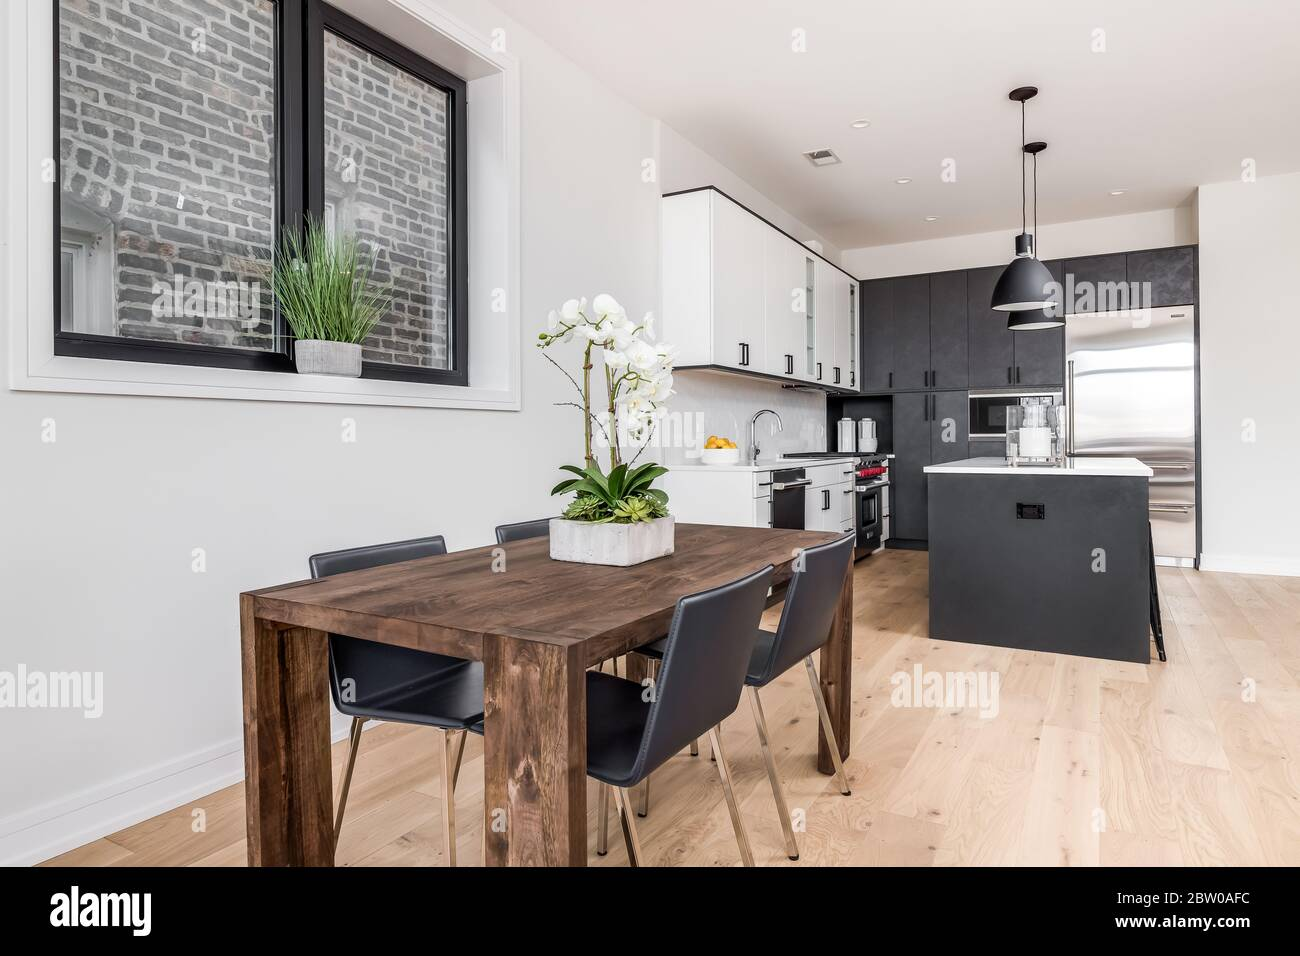 A Dining Room And Kitchen With White And Dark Grey Kitchen Cabinets A Flower Is On The Table As A Centerpiece With Four Chairs At The Wooden Table Stock Photo Alamy